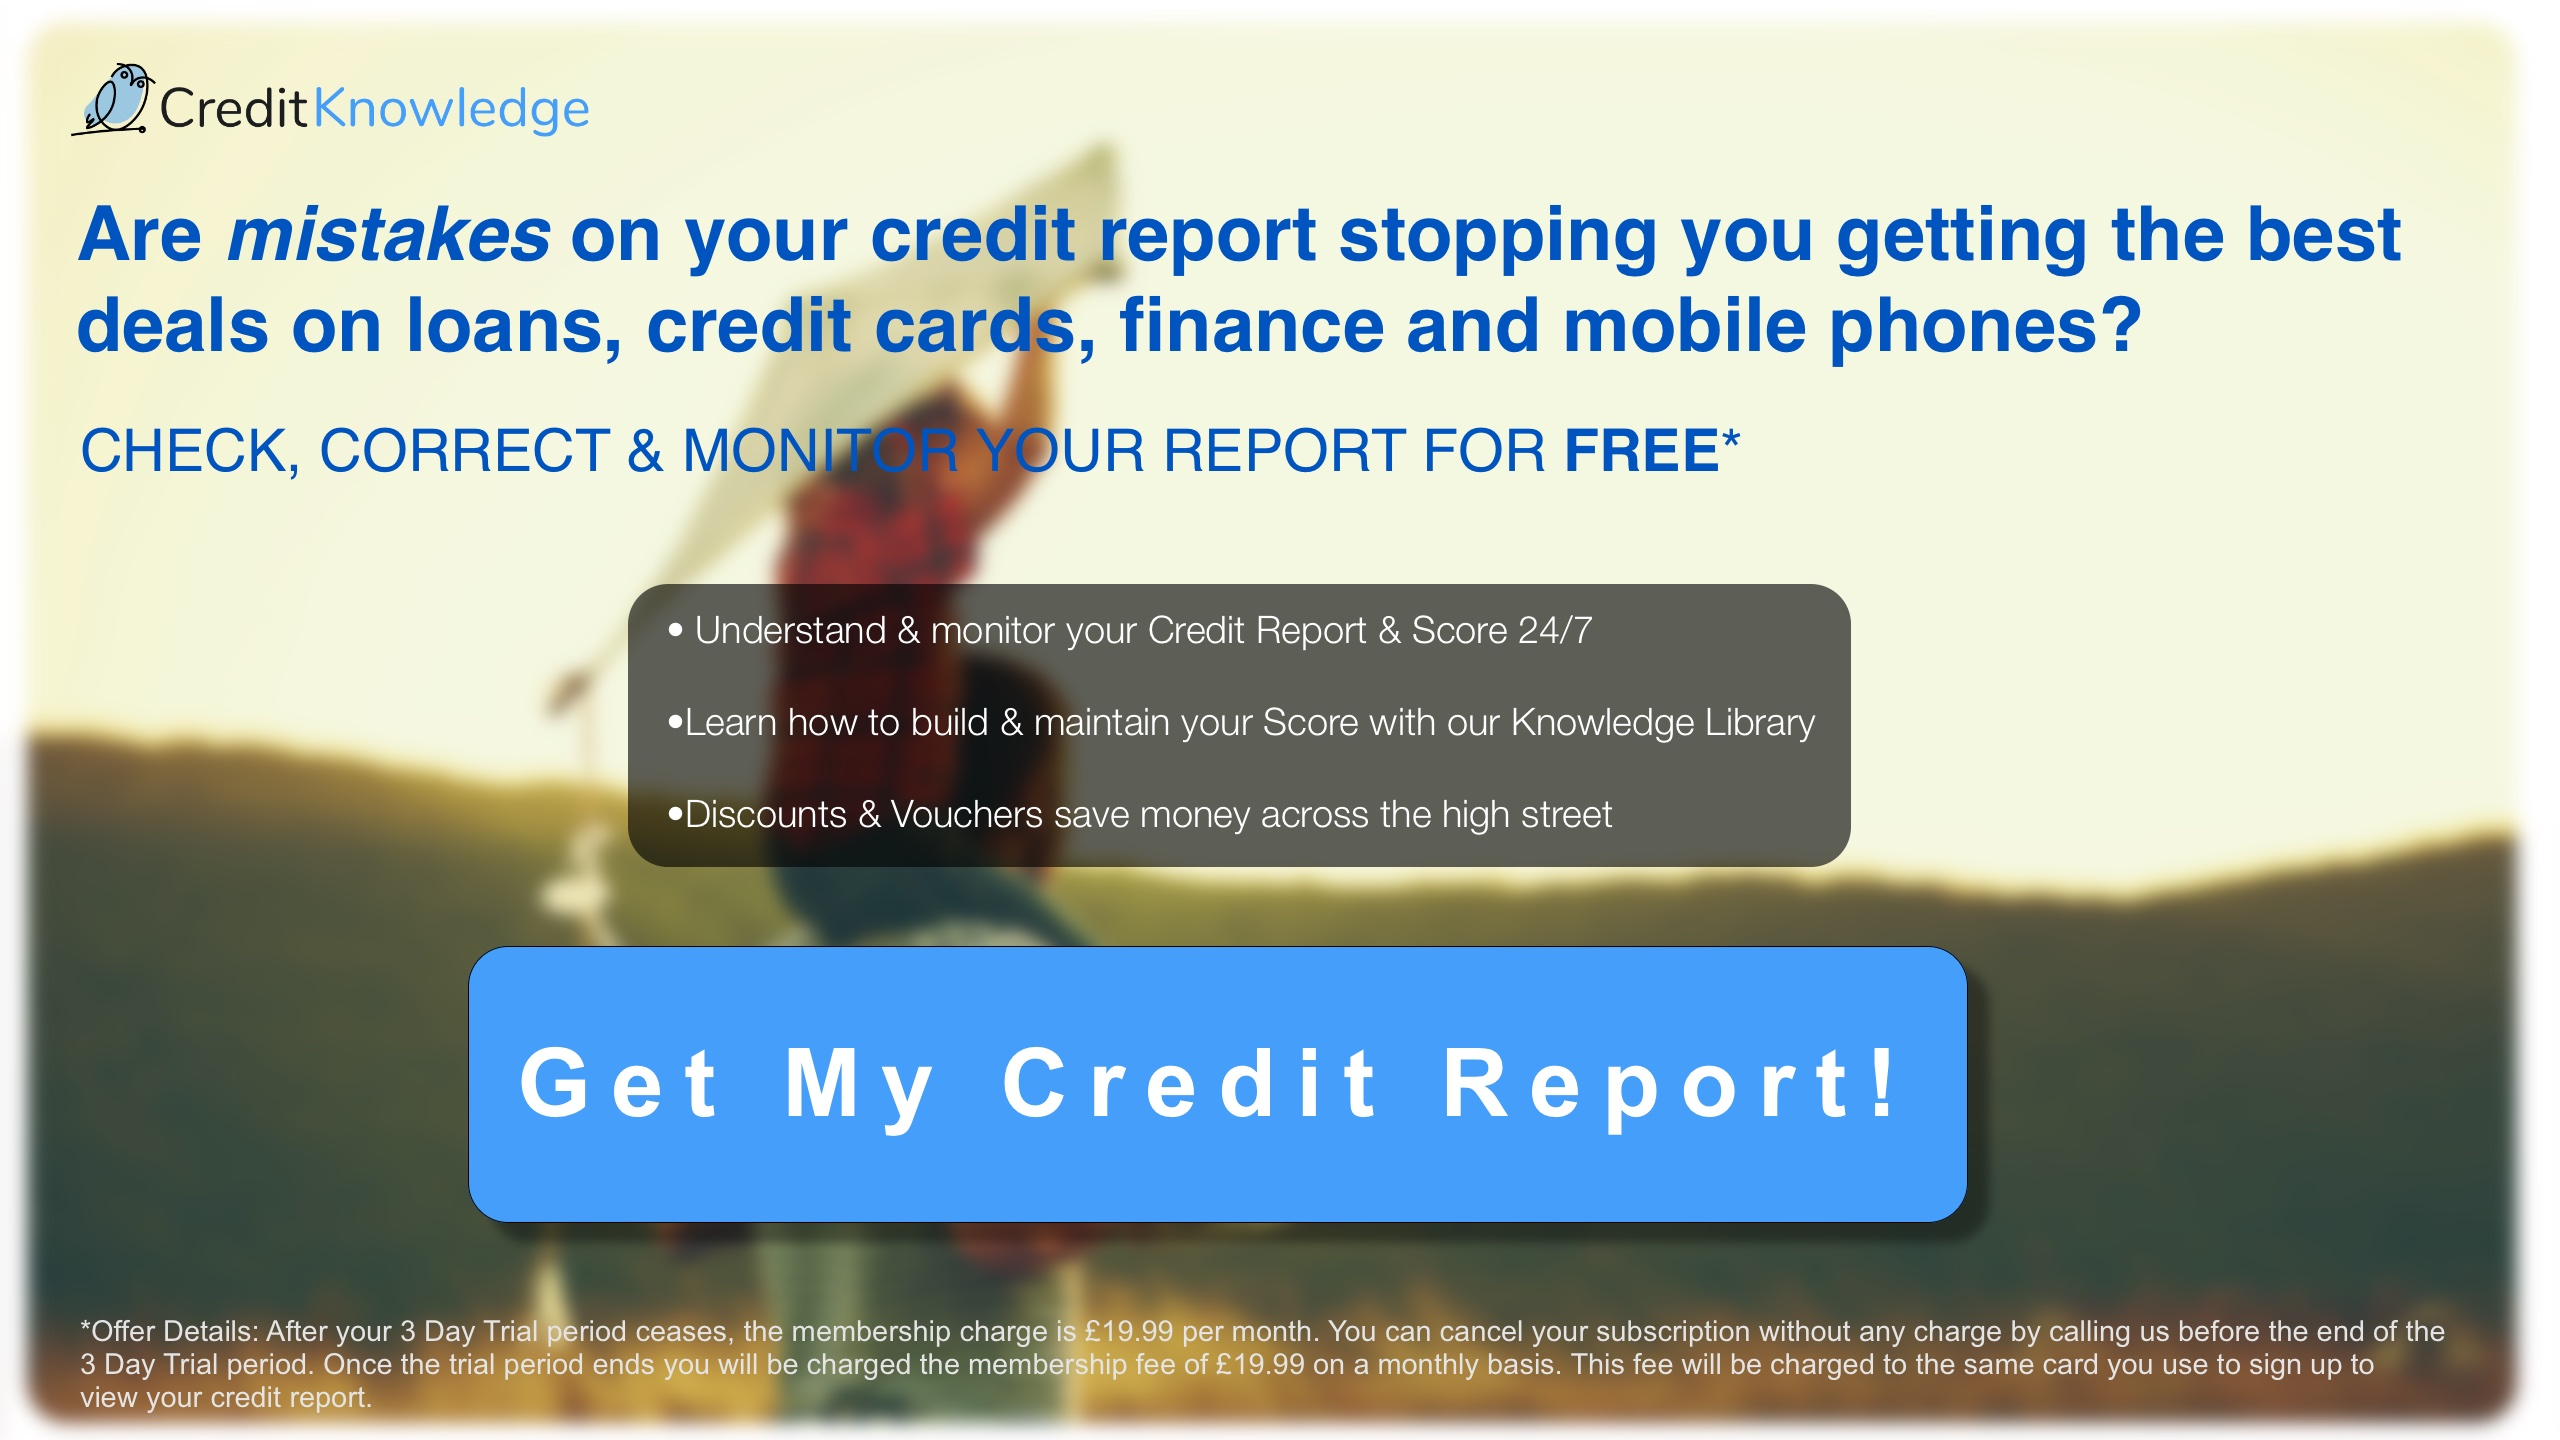 Credit Knowledge